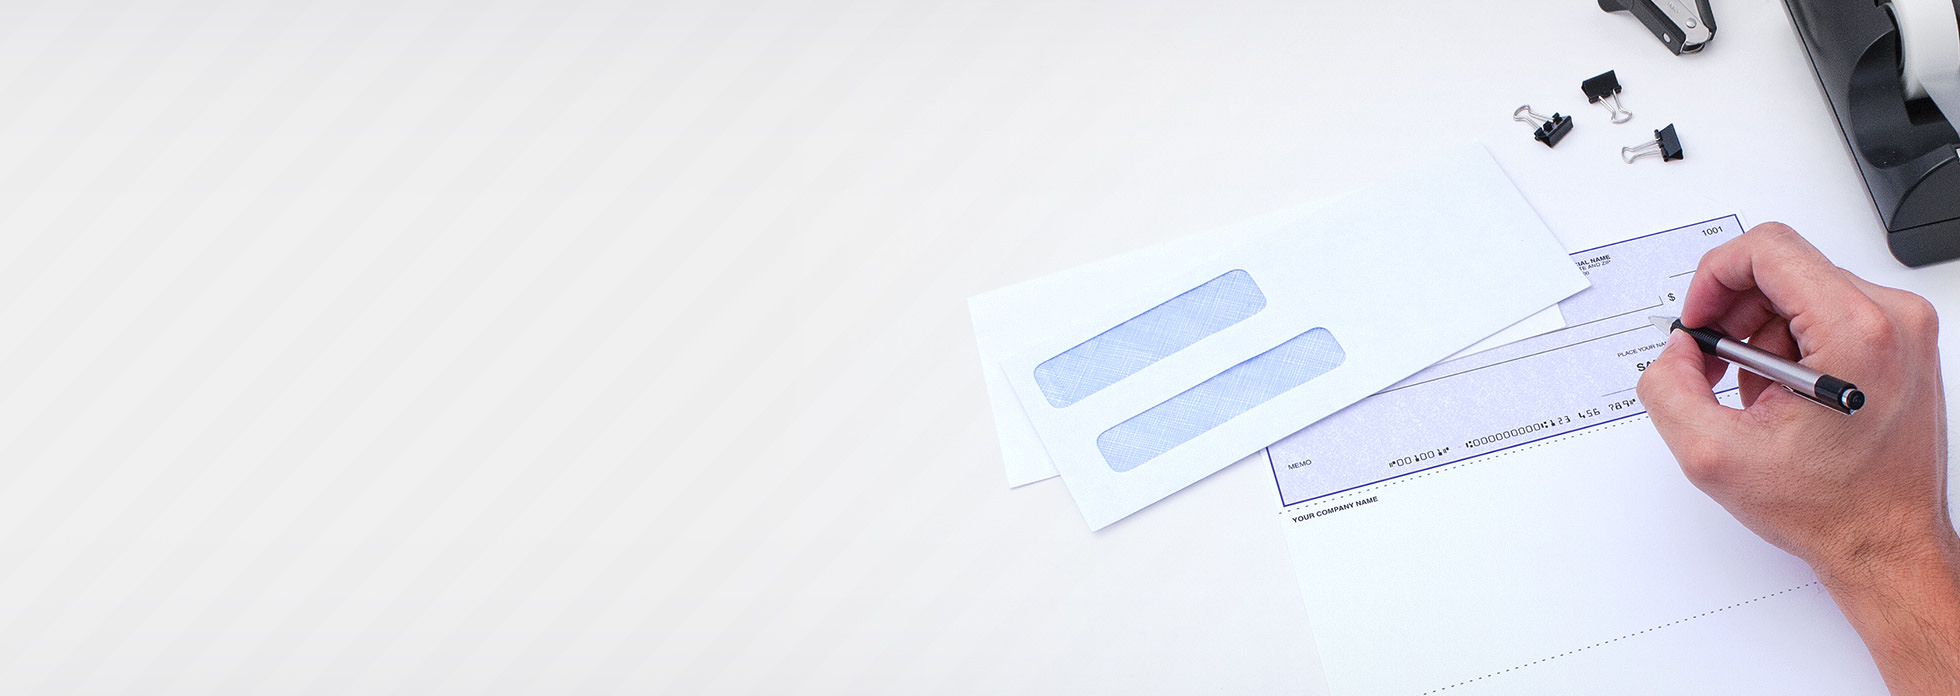 Don't forget security envelopes. et compatible security tinted envelopes for your checks and forms. Shop Envelopes